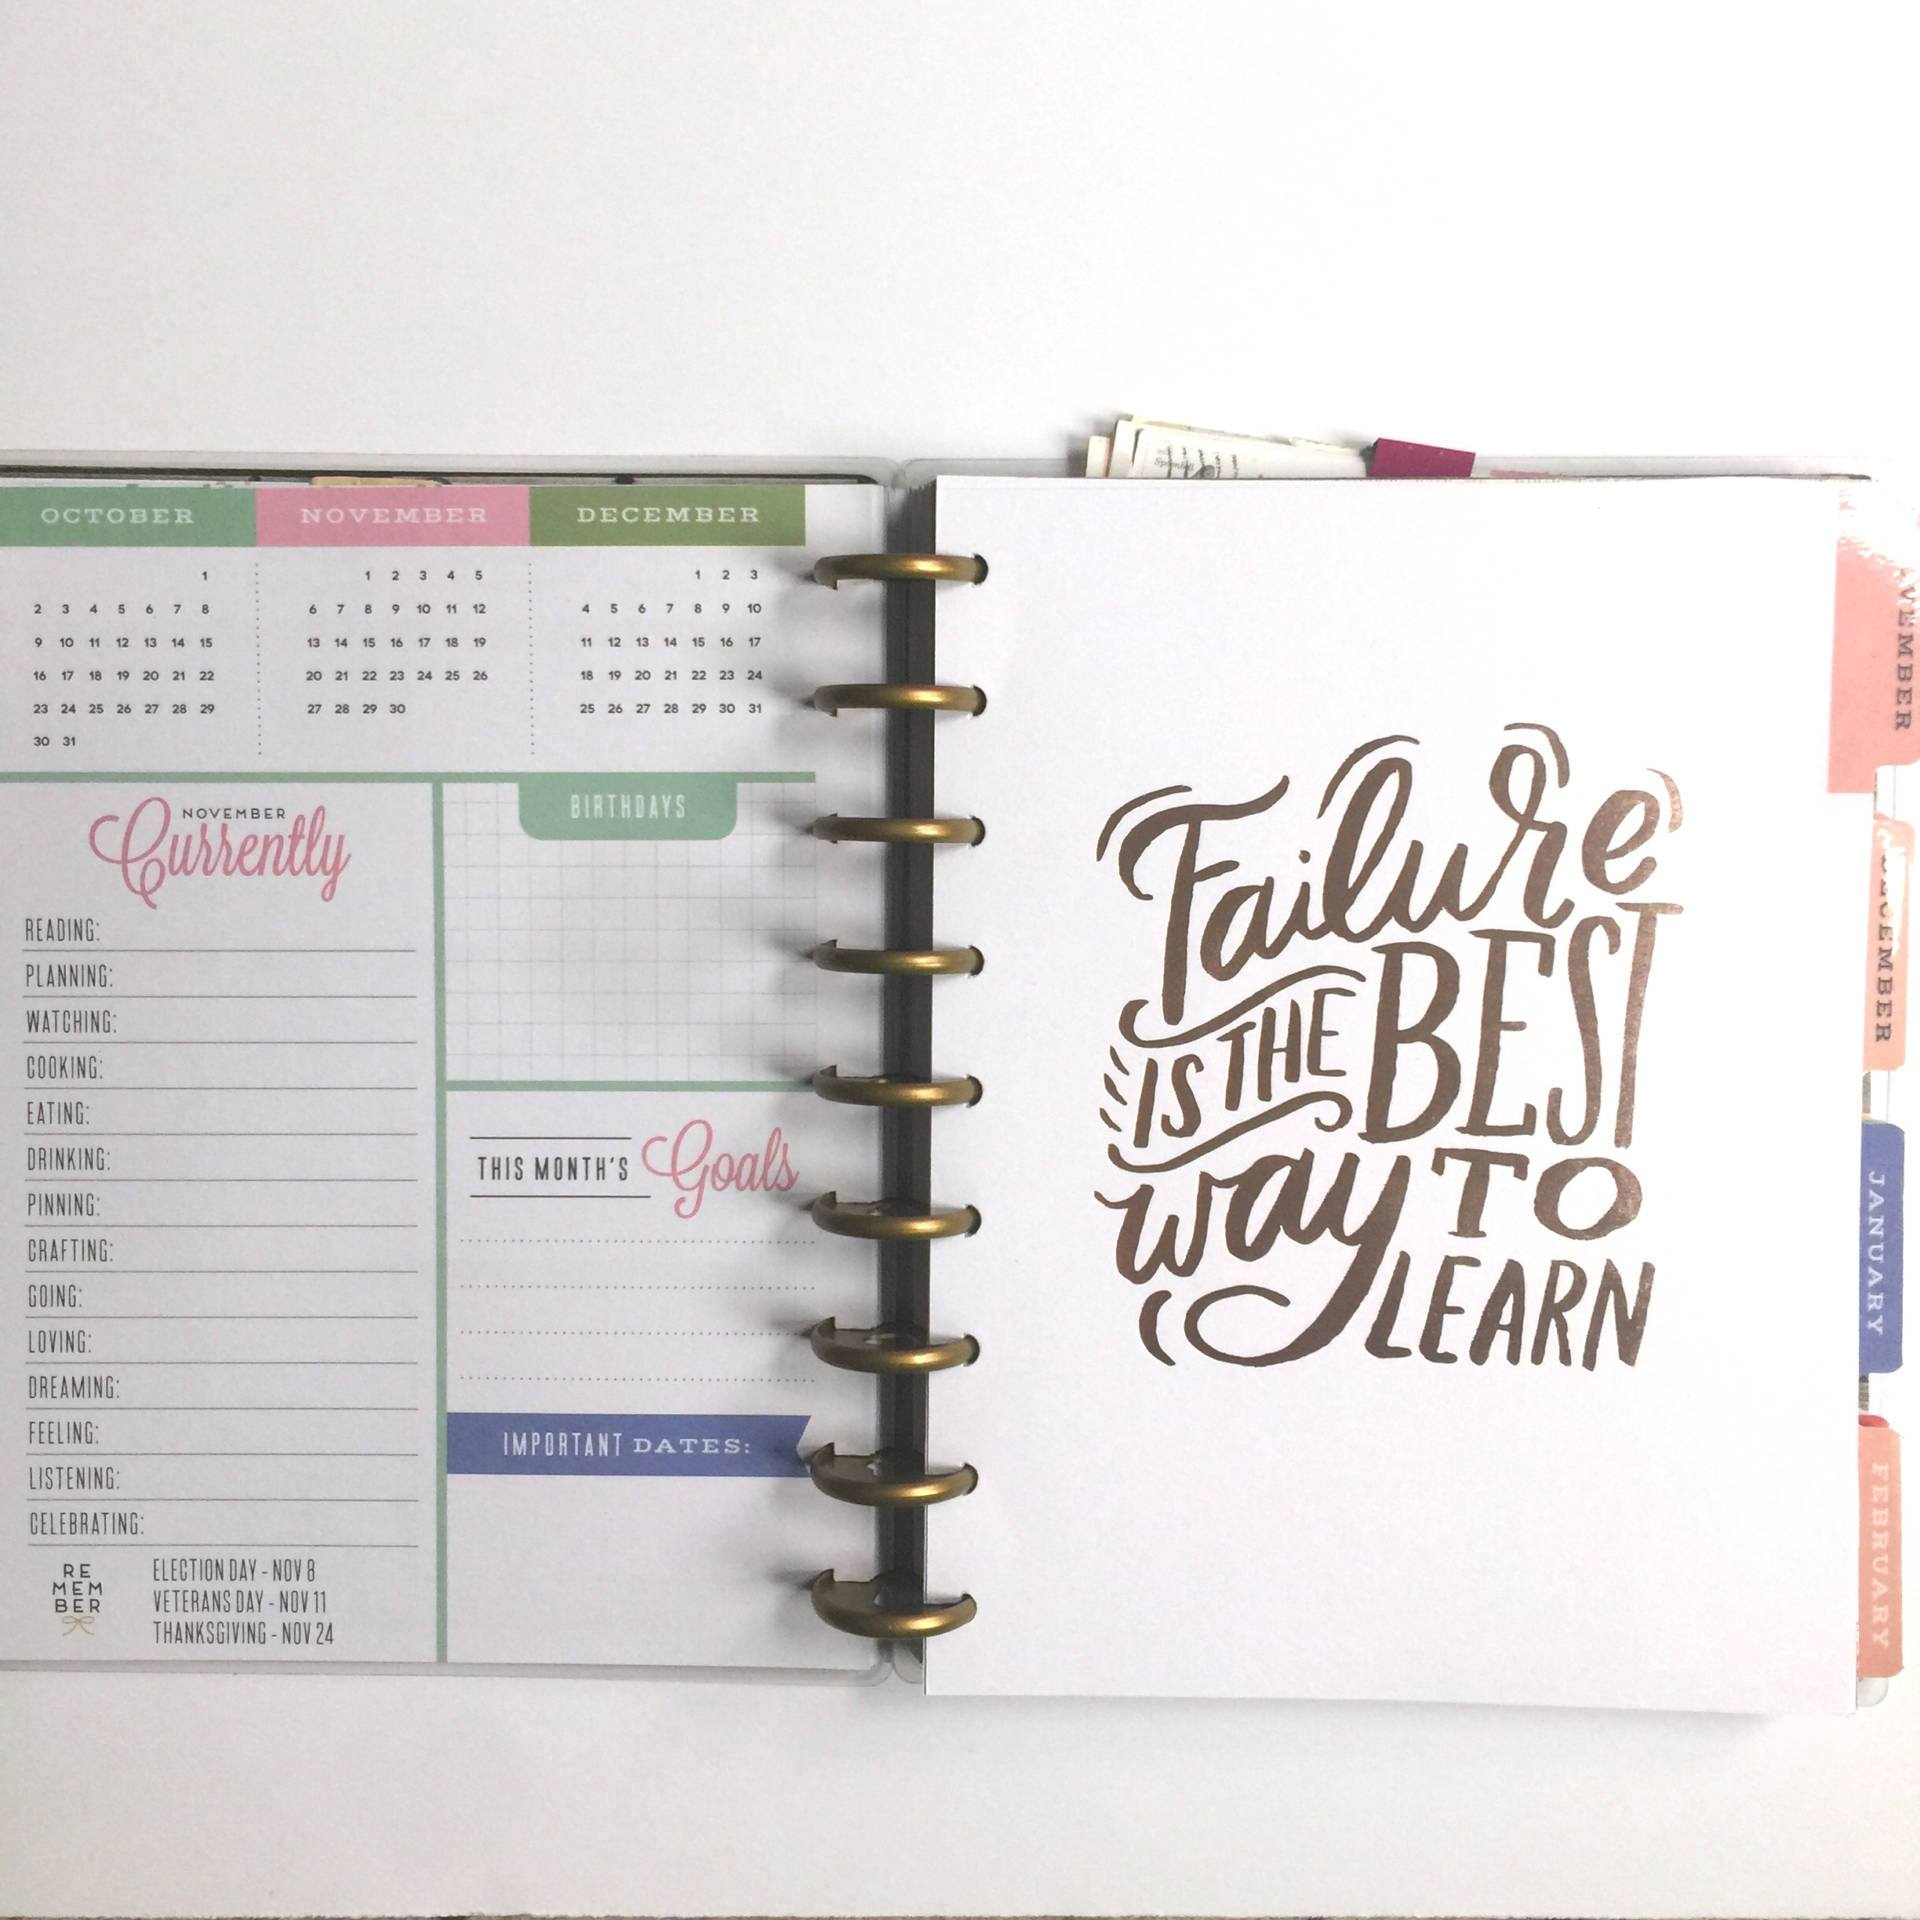 The Happy Planner has a new quote on the front of every month divider